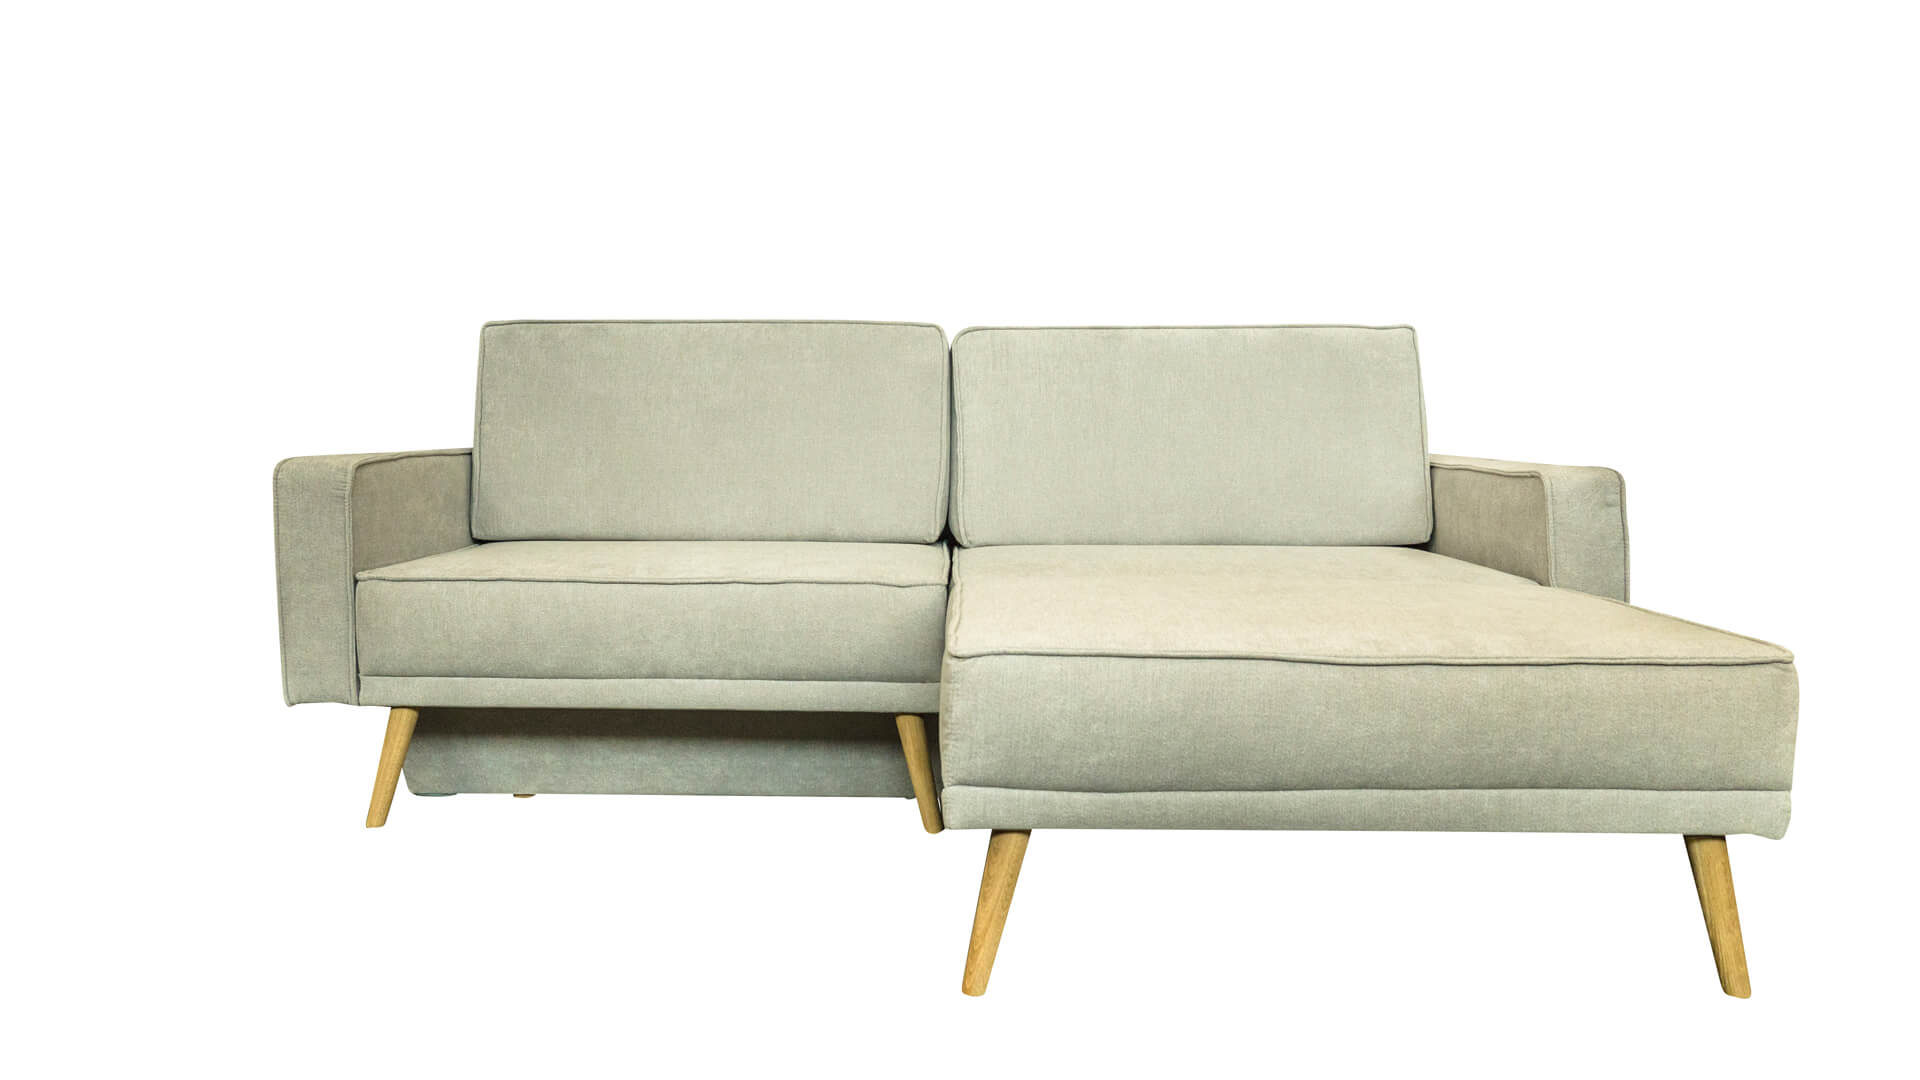 Skandinavisches Sofa Skandinavisches Sofa Schlaffunktion Review Home Co